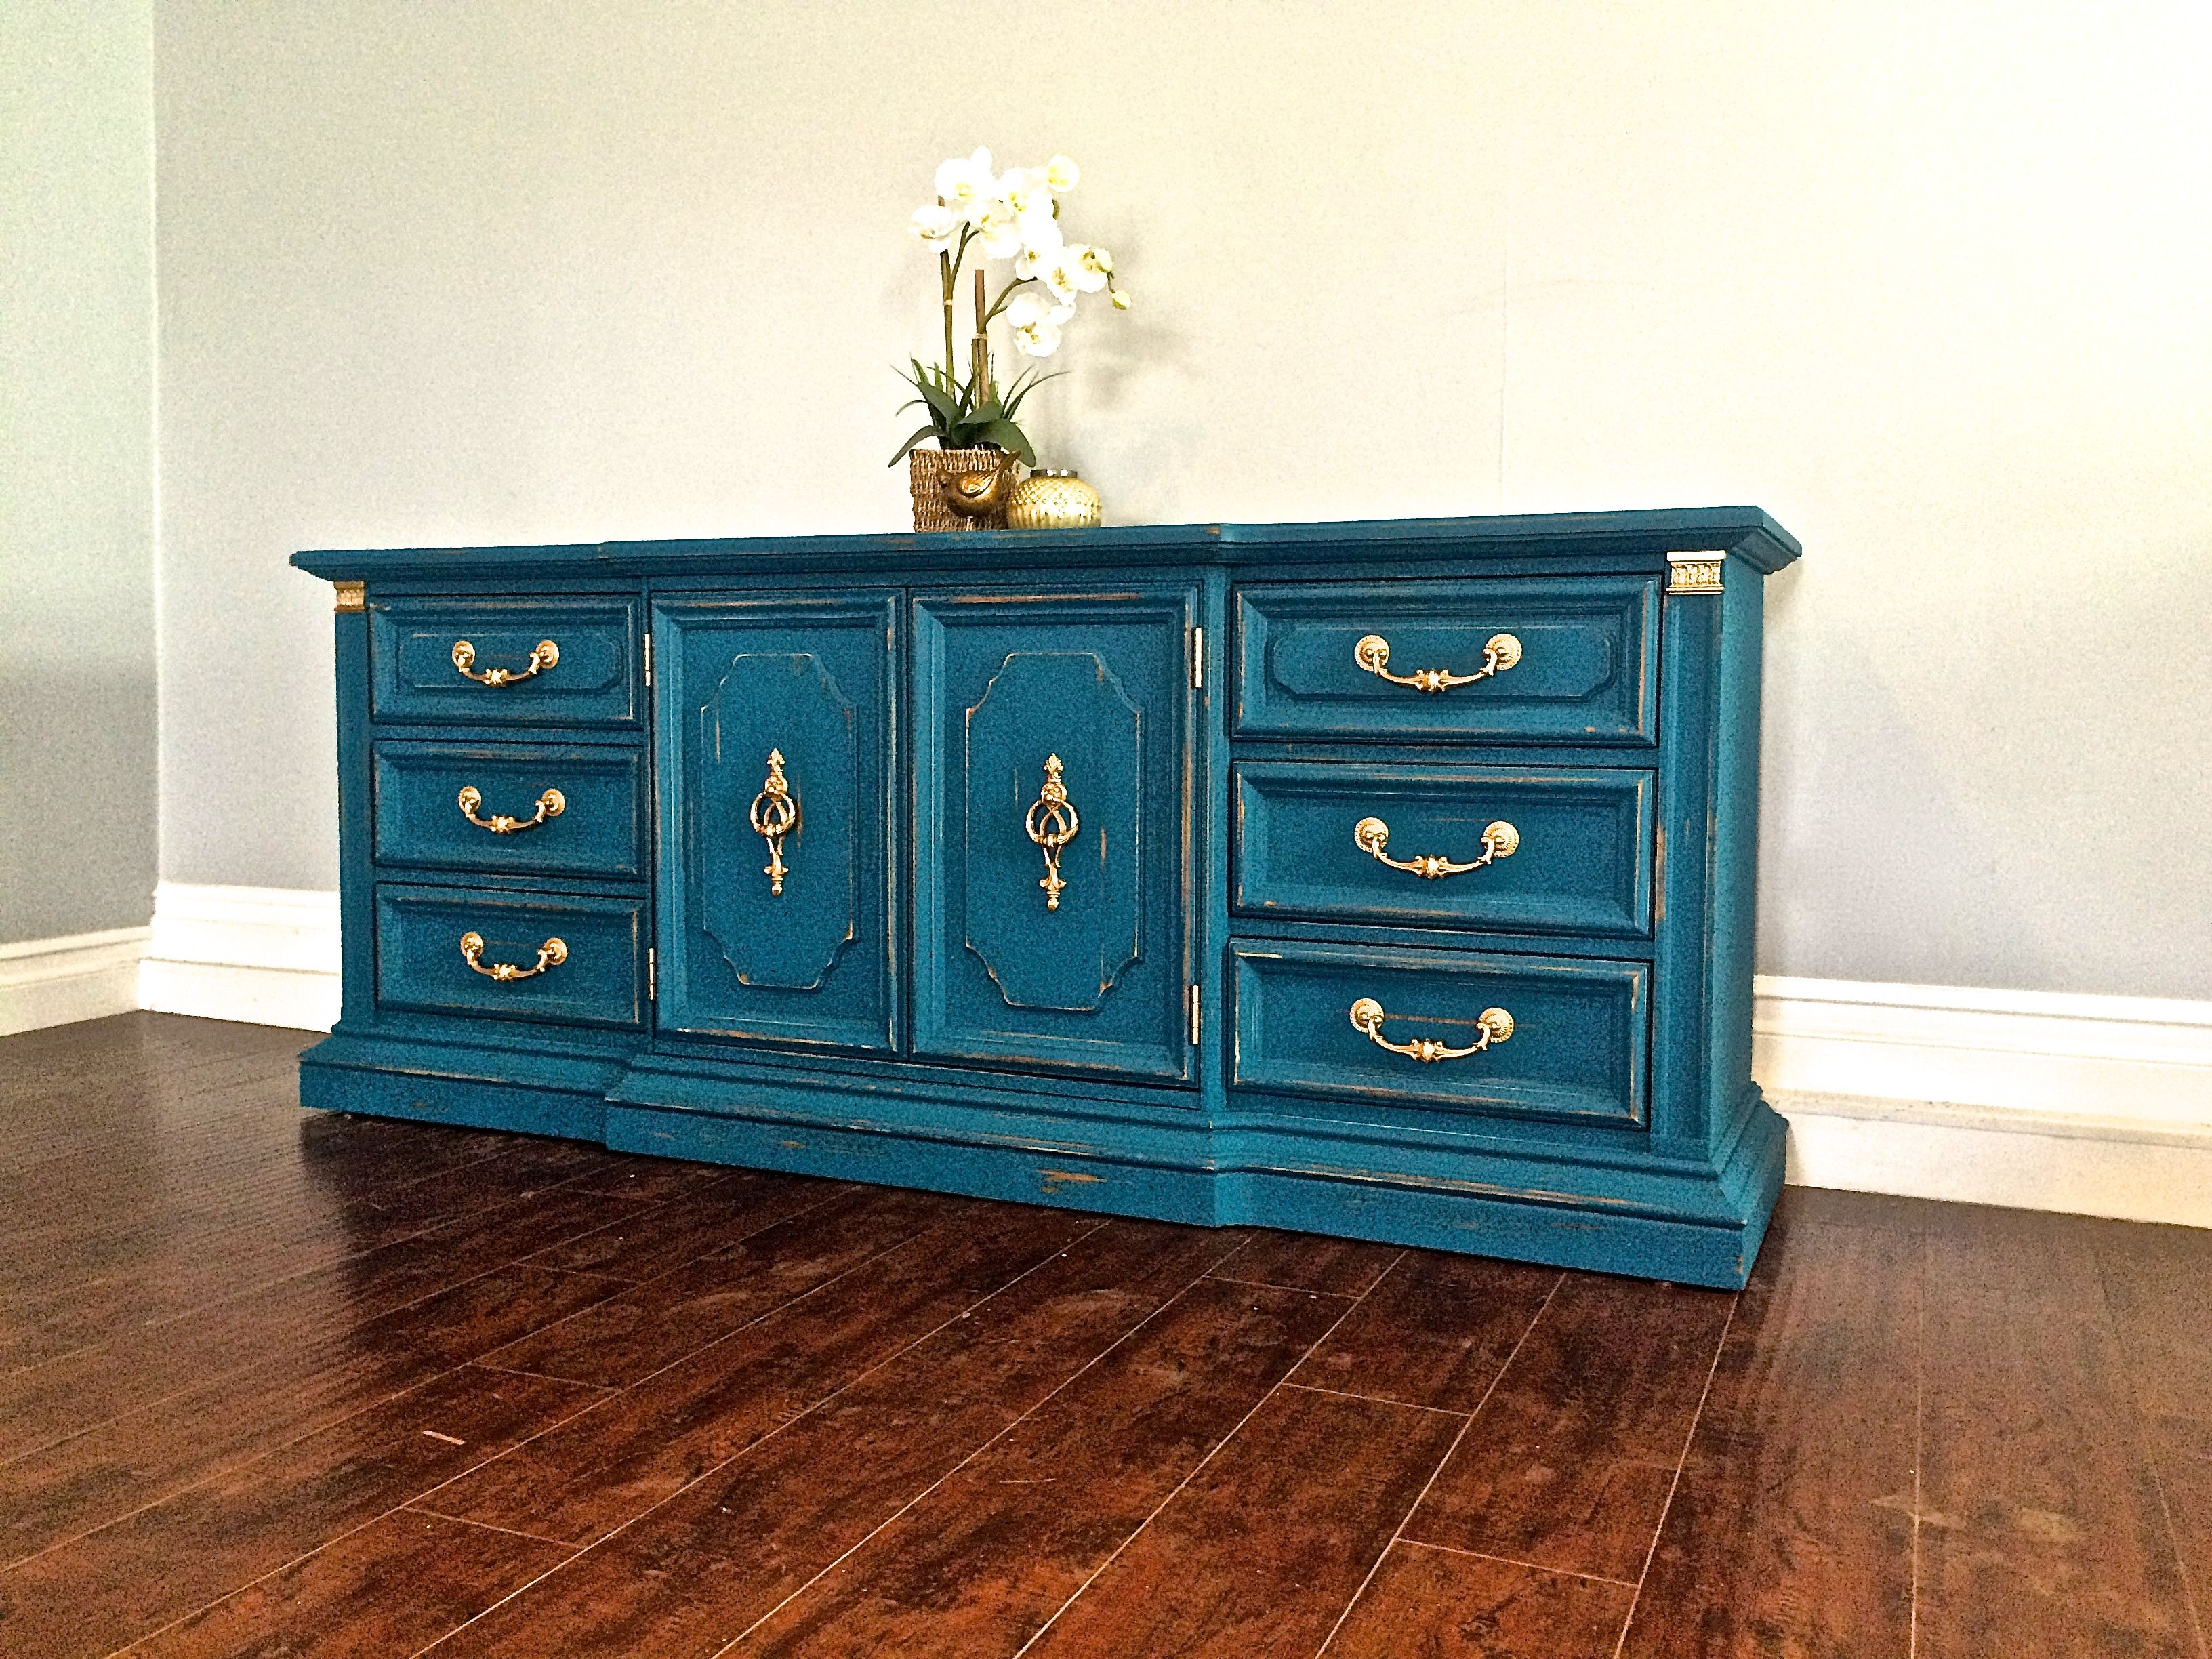 Blue shabby chic furniture - Shabby Chic Peacock Blue Gold Leaf 9 Drawer Dresser 450 Sold